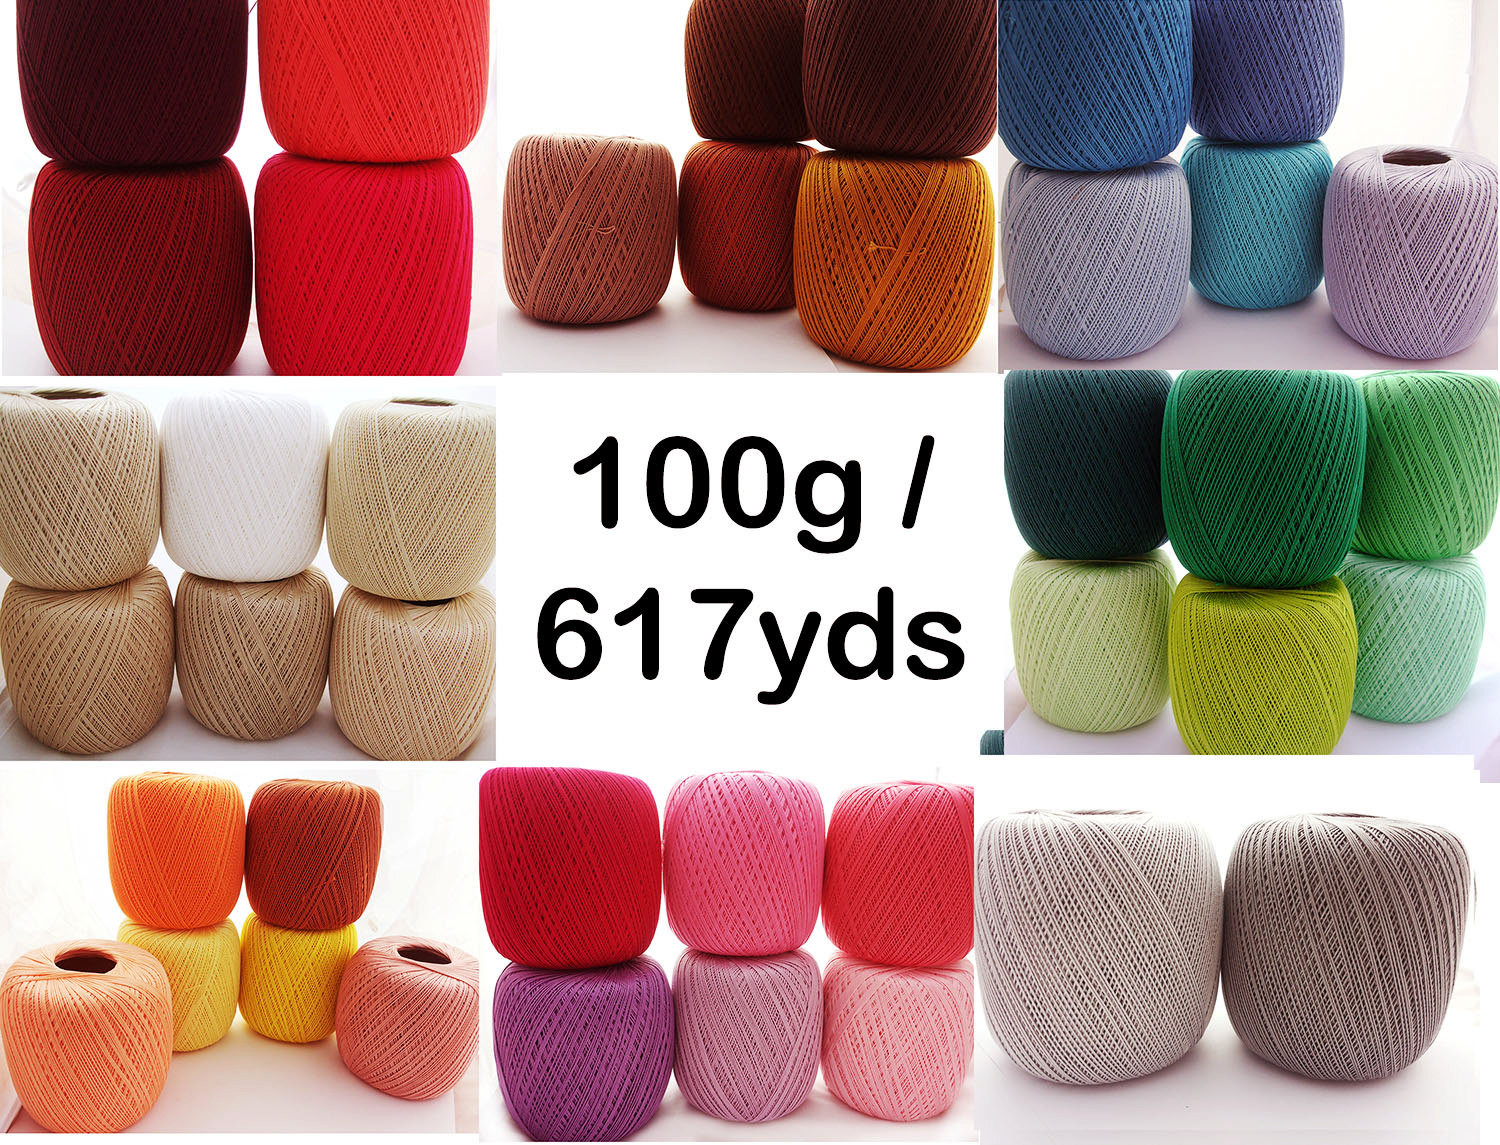 Crochet Thread Size 10 Inspirational Crochet Cotton Thread Size 10 100g X 616yds 3ply by Of Innovative 40 Pics Crochet Thread Size 10